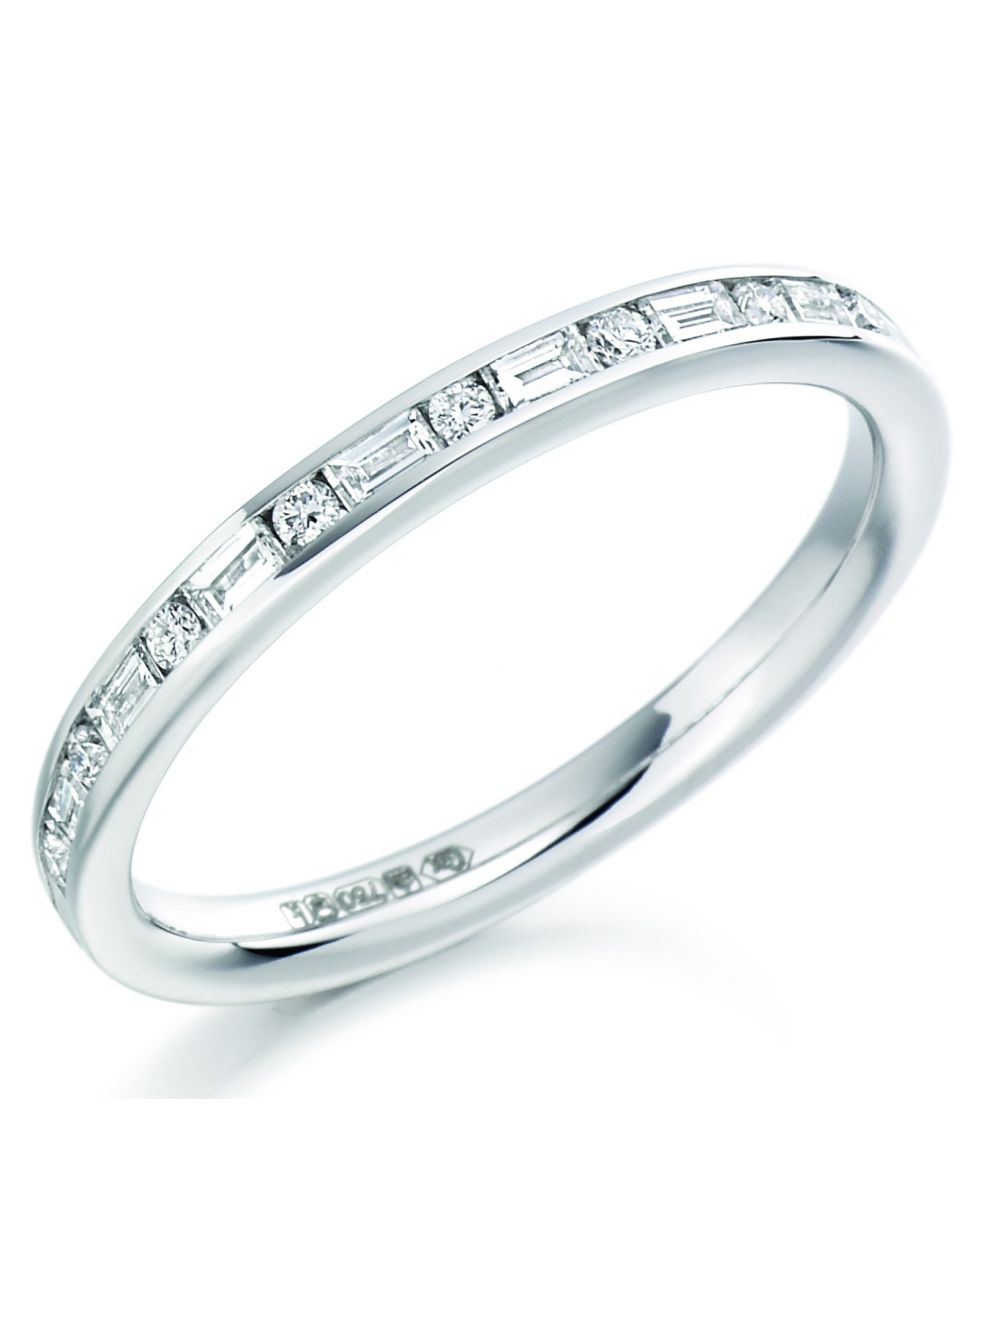 Featured Photo of Channel Set Round Brilliant And Baguette Cut Diamond Wedding Bands